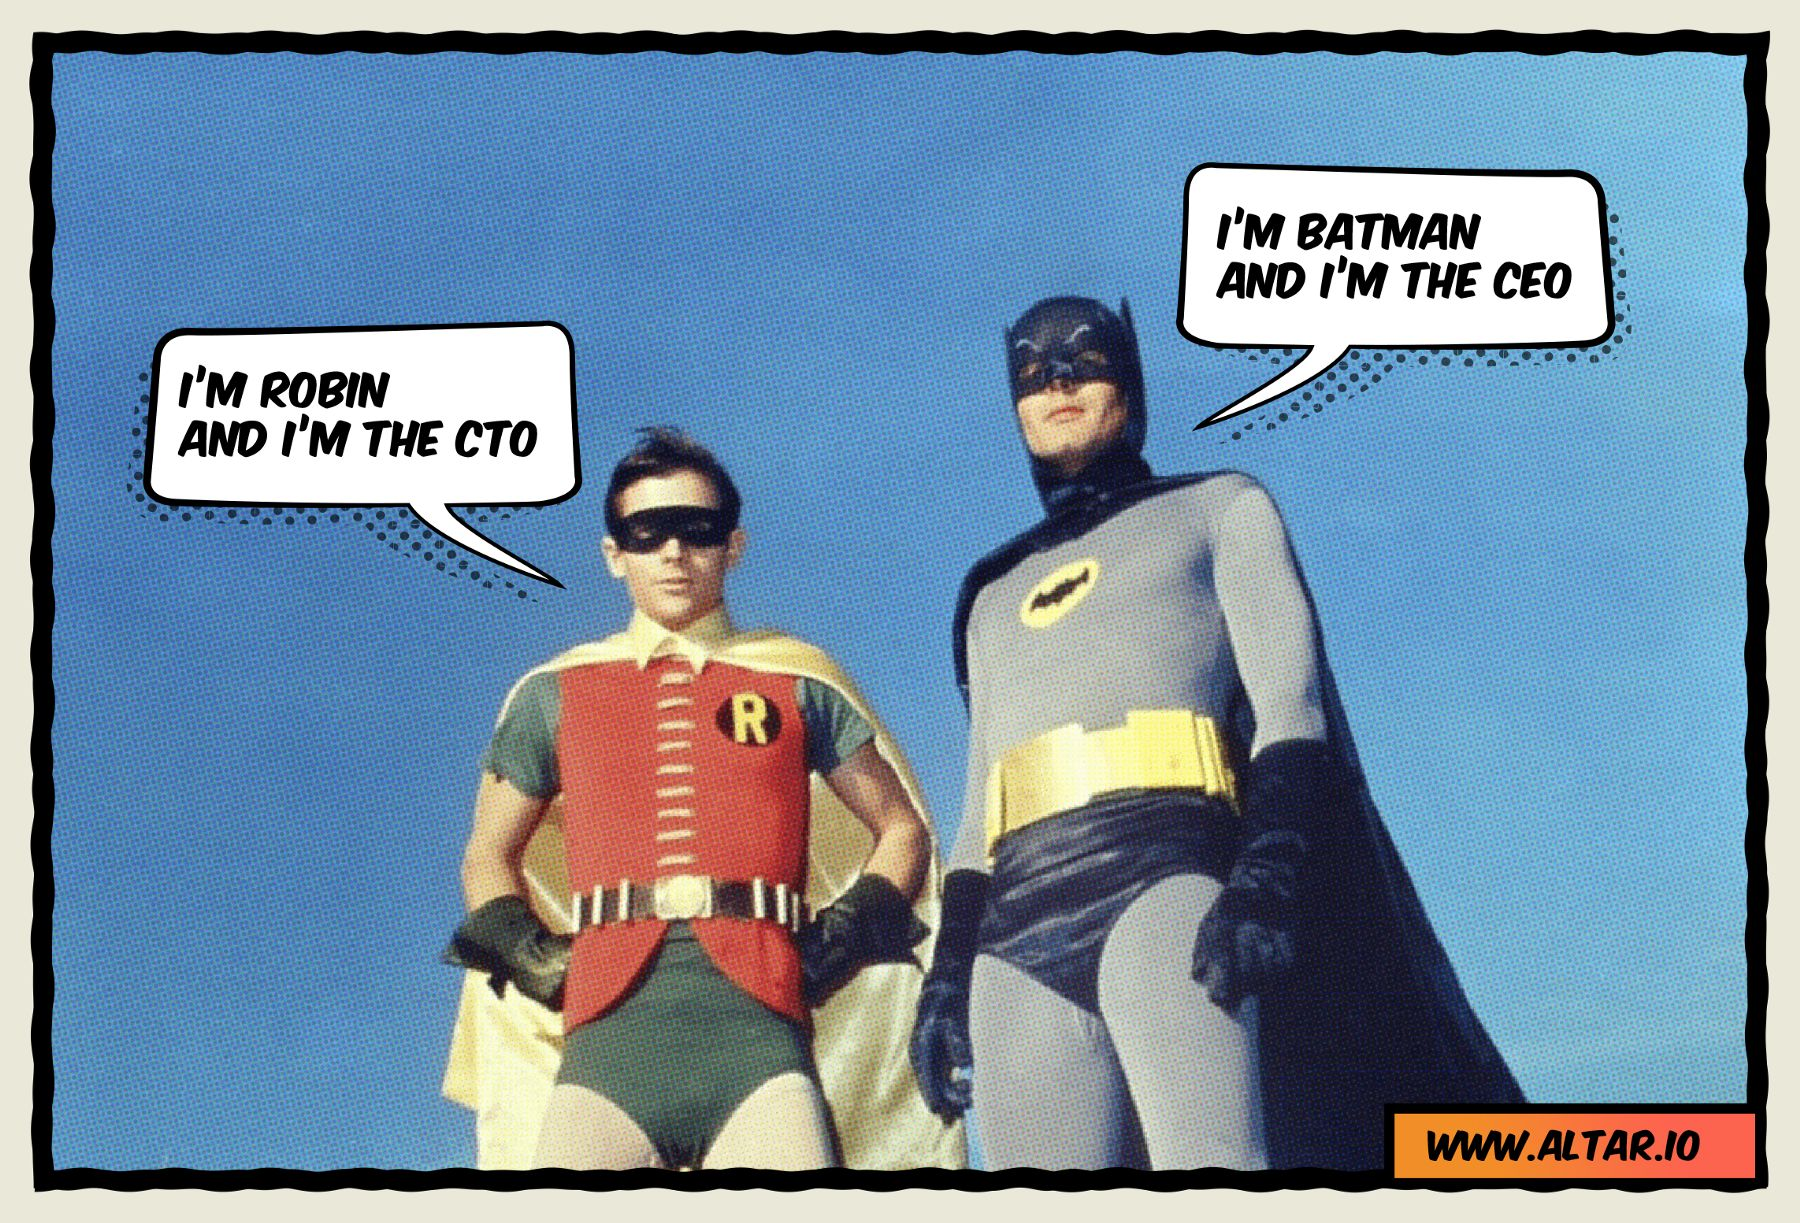 /startup-founders-finding-the-cto-robin-to-your-ceo-batman-a07o3wn8 feature image